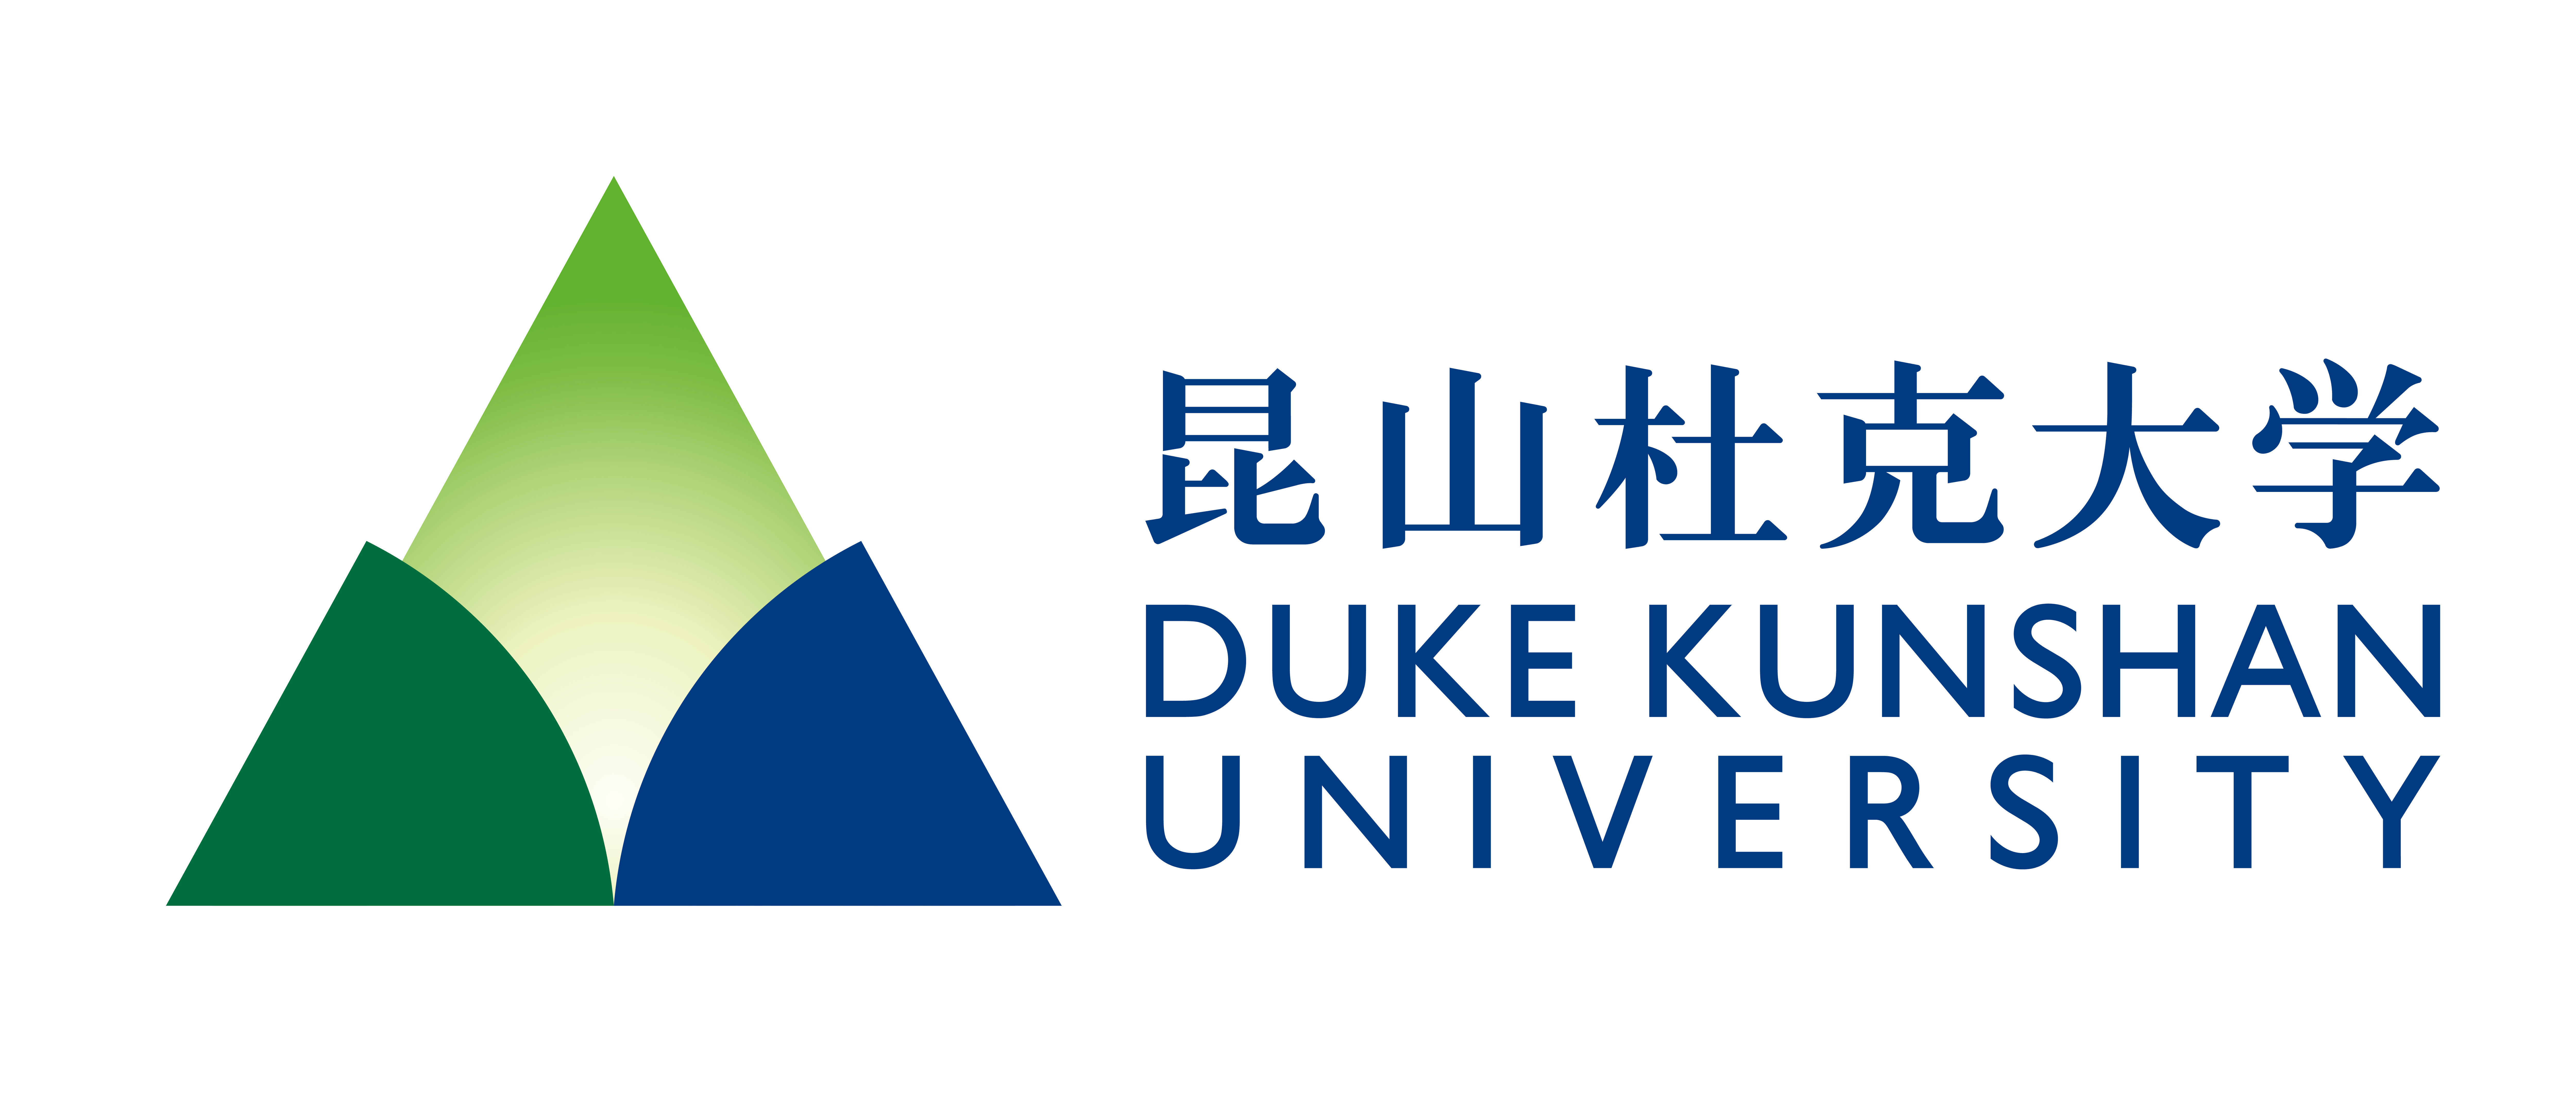 Duke Kunshan University - Wikipedia